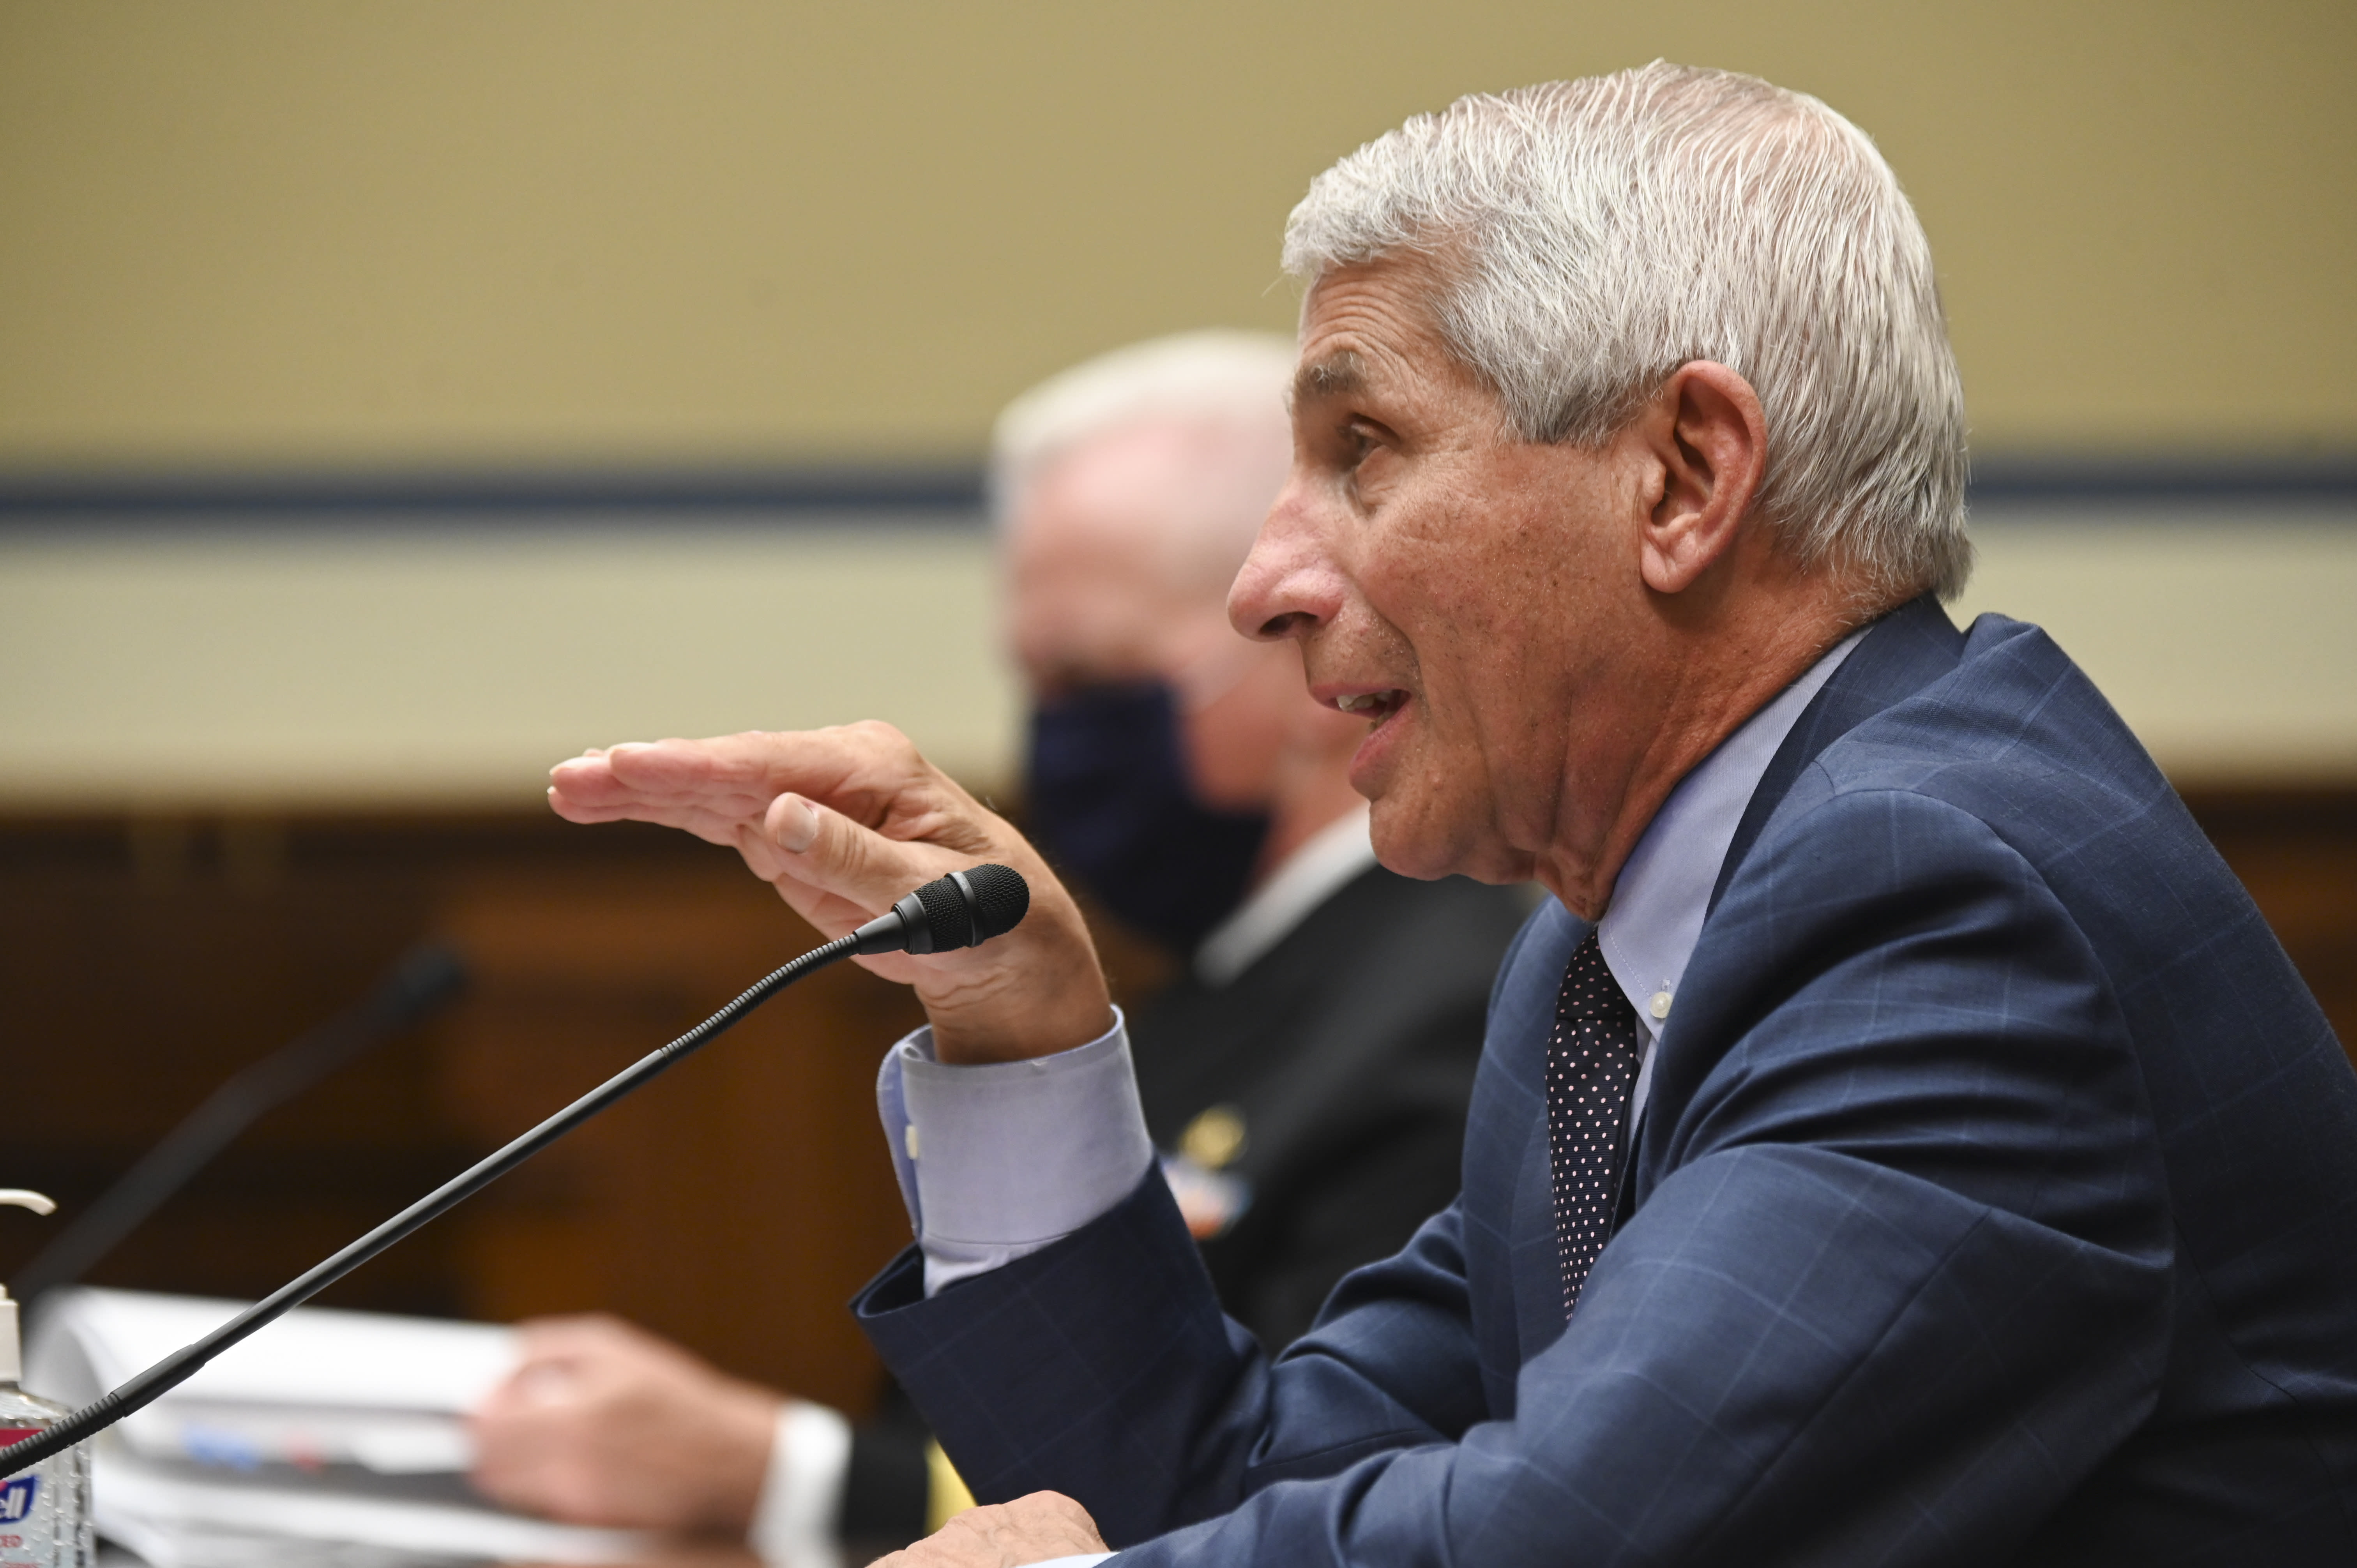 Dr. Anthony Fauci, director of the National Institute of Allergy and Infectious Diseases, speaks during a House Select Subcommittee hearing on the Coronavirus, Friday, July 31, 2020 on Capitol Hill in Washington. (Erin Scott/Pool via AP)